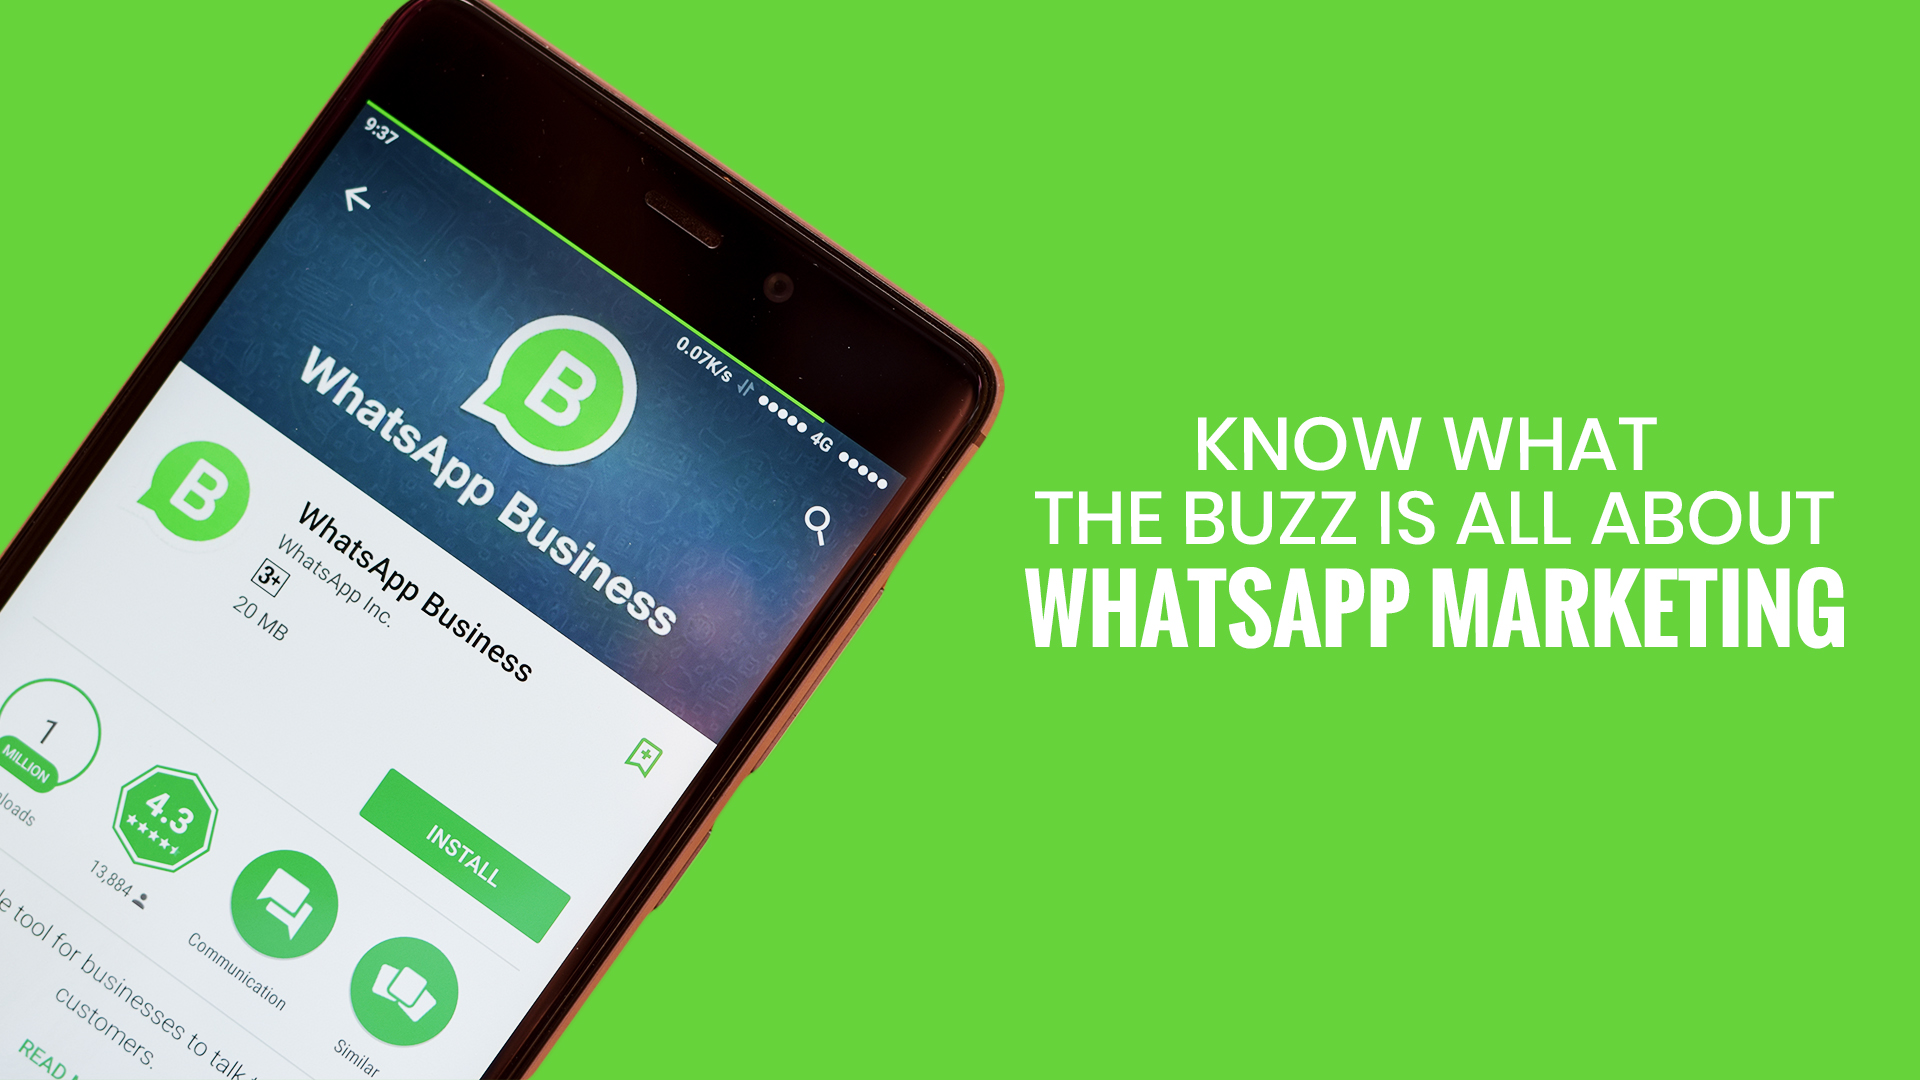 Know What The Buzz Is All About - WhatsApp Marketing